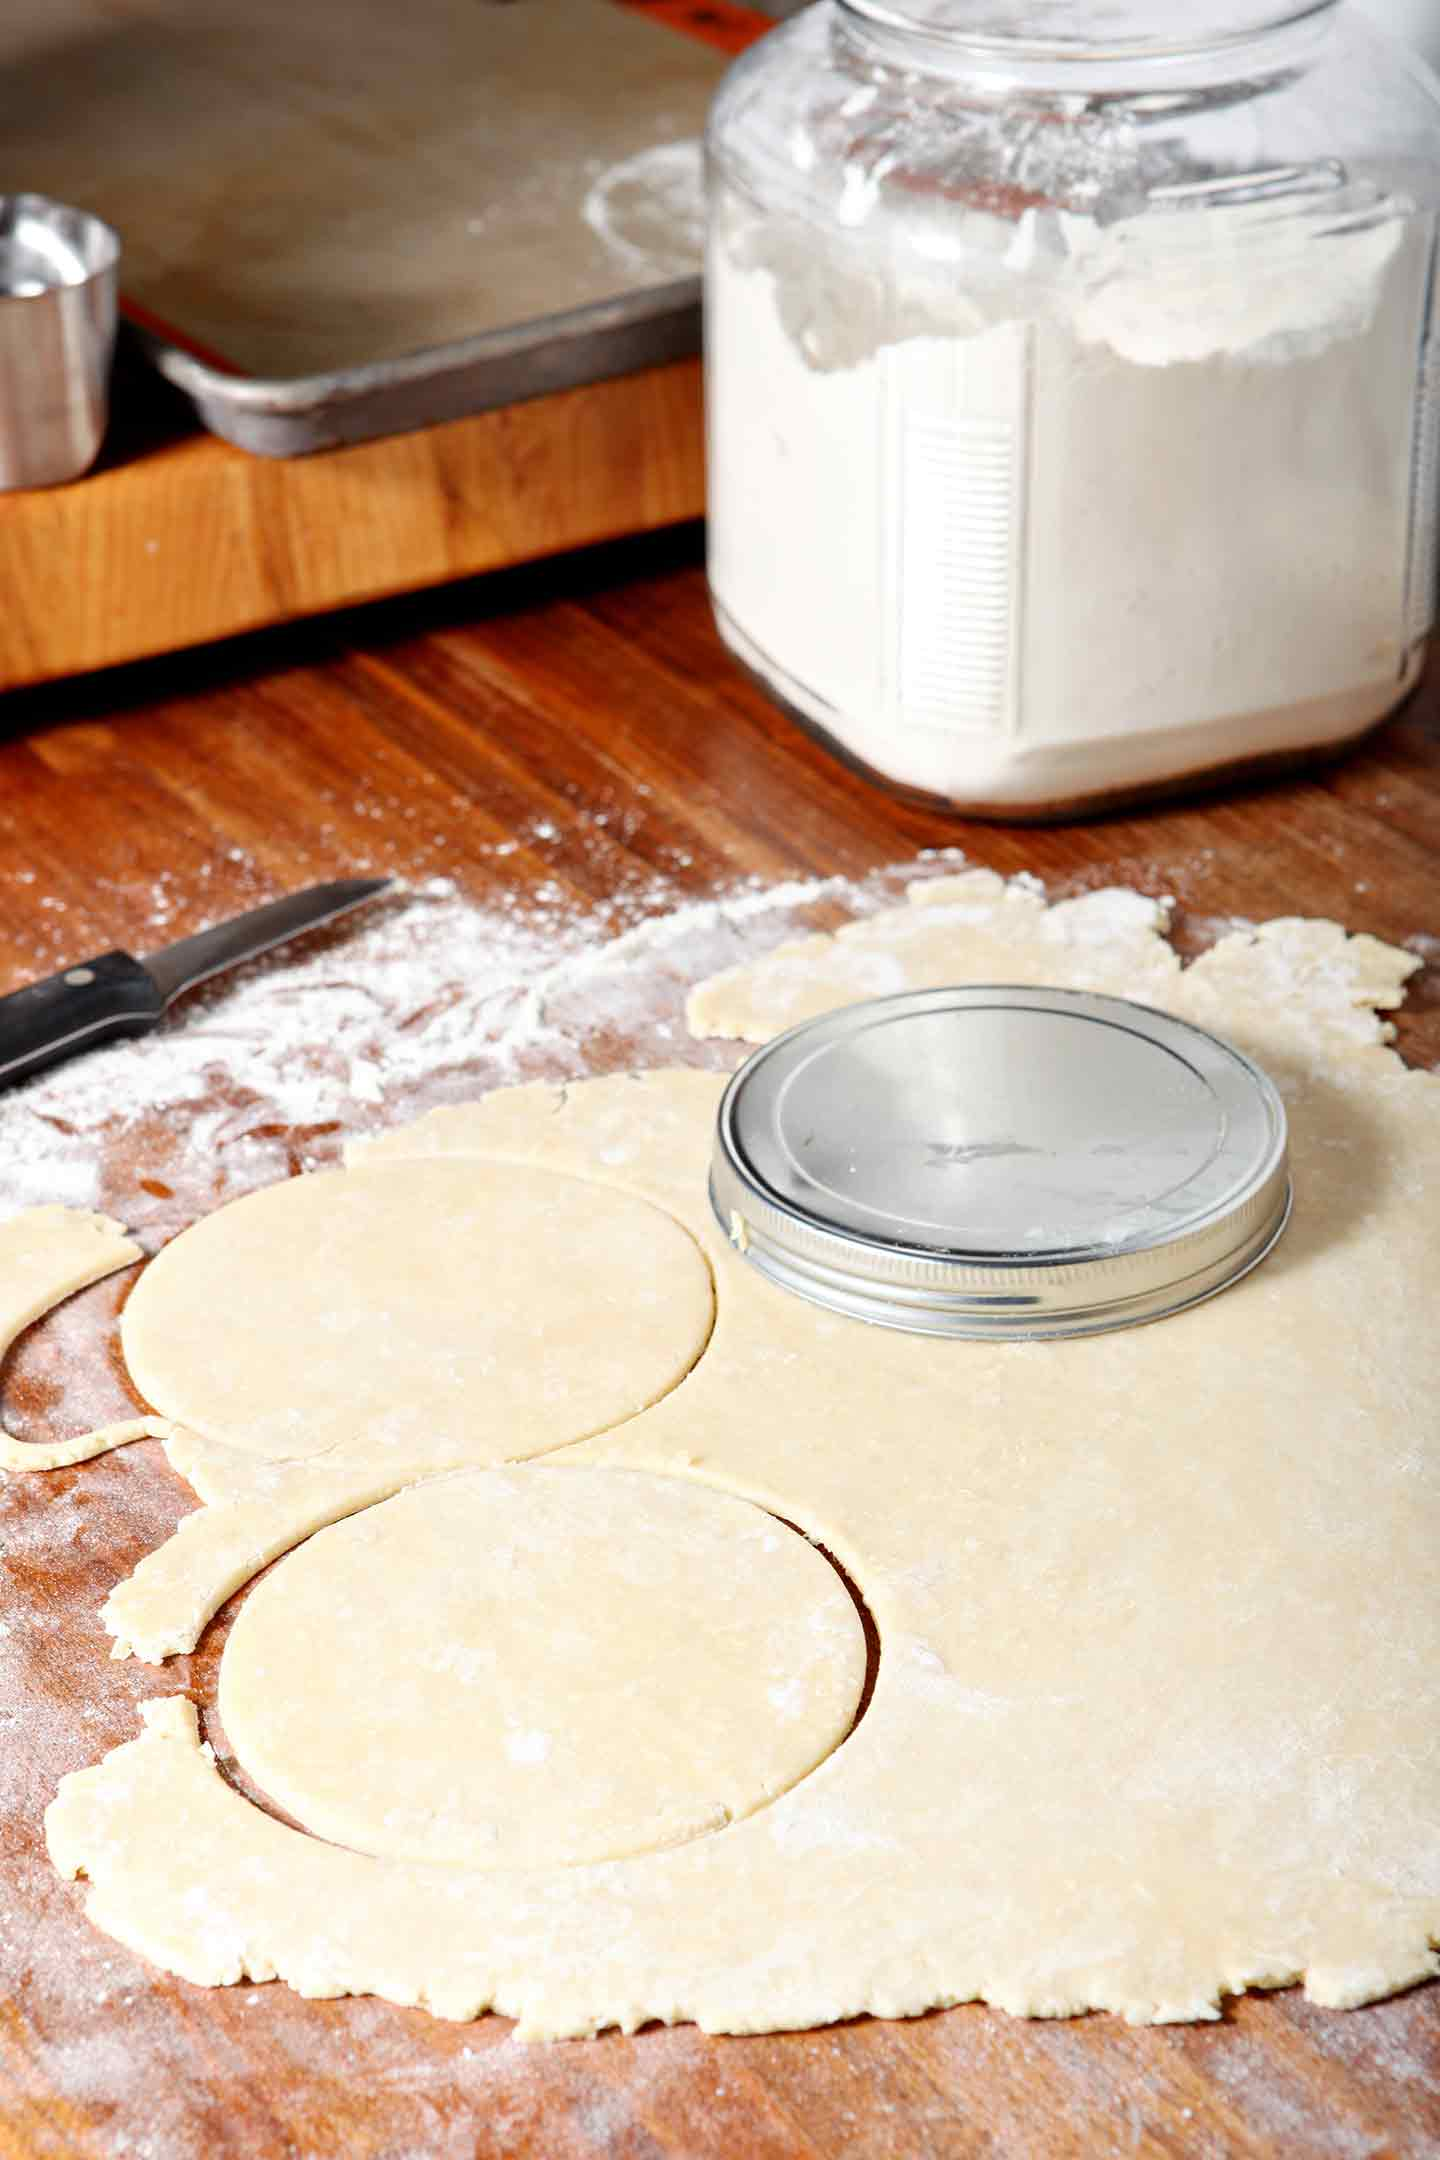 A canister lid is used to form the hand pie crust for Chocolate Bourbon Pecan Hand Pies before filling.